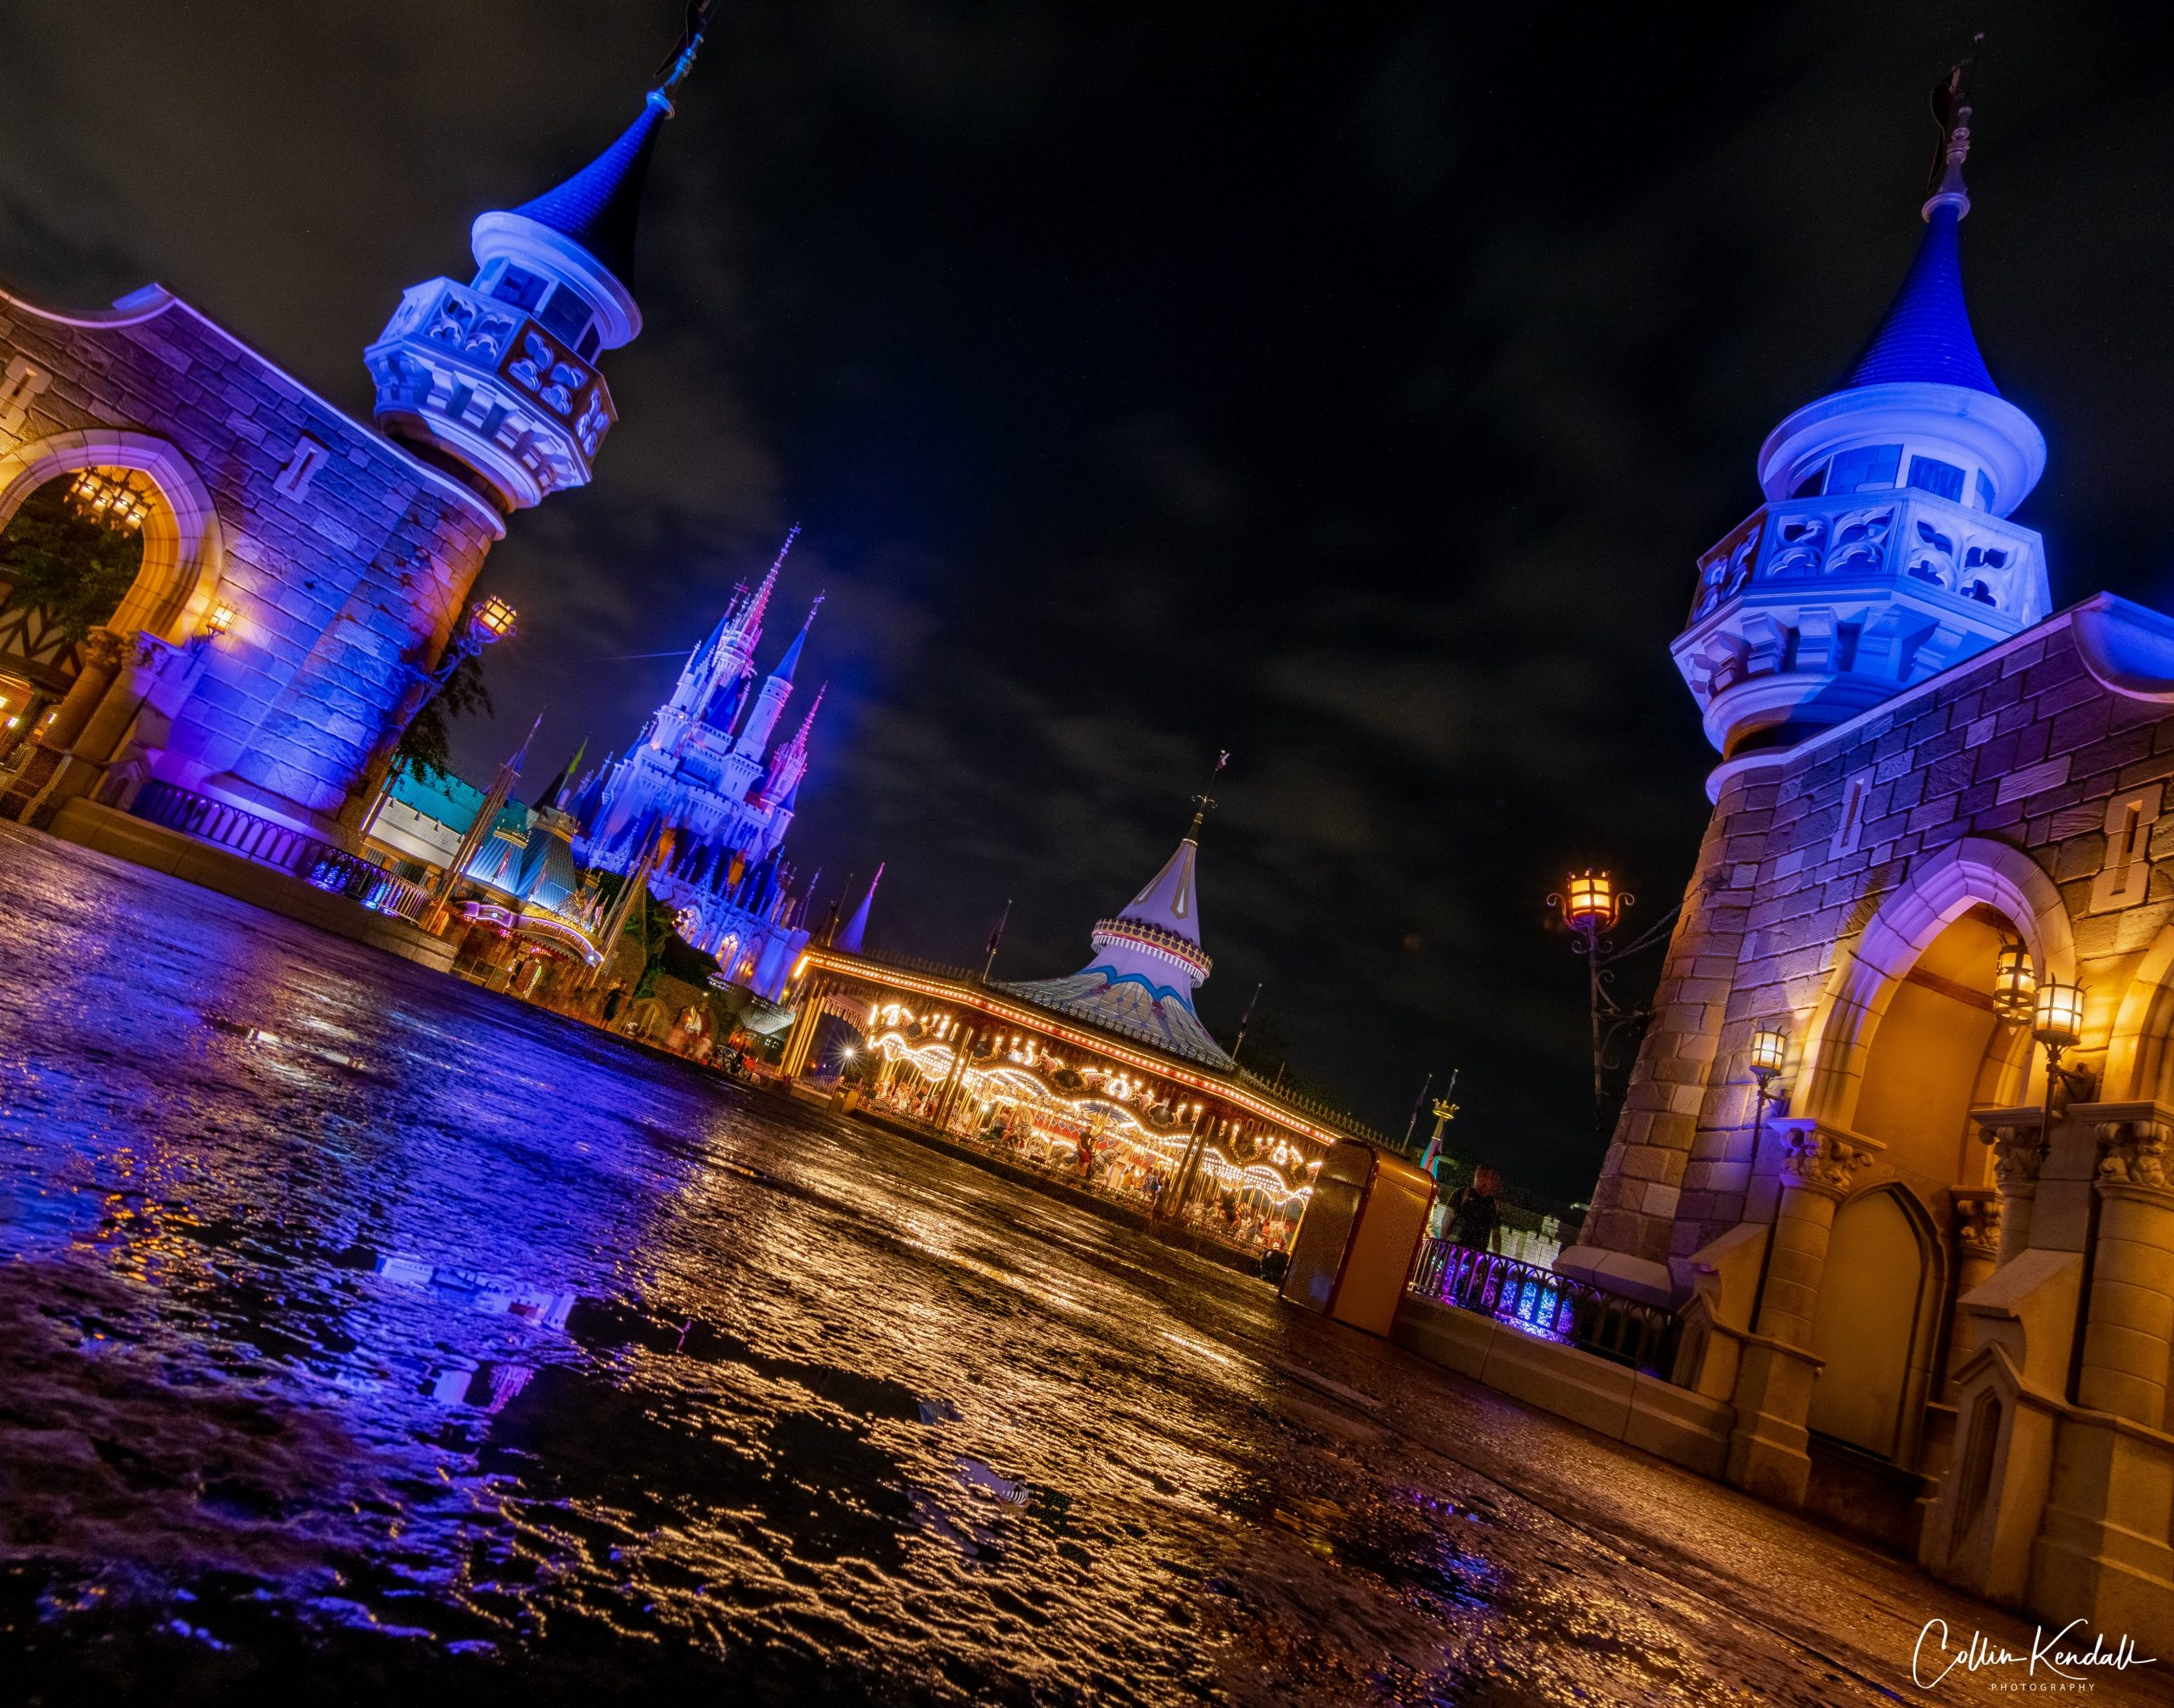 Our Typical Disney World 7 Day Itinerary - Cinderella Castle